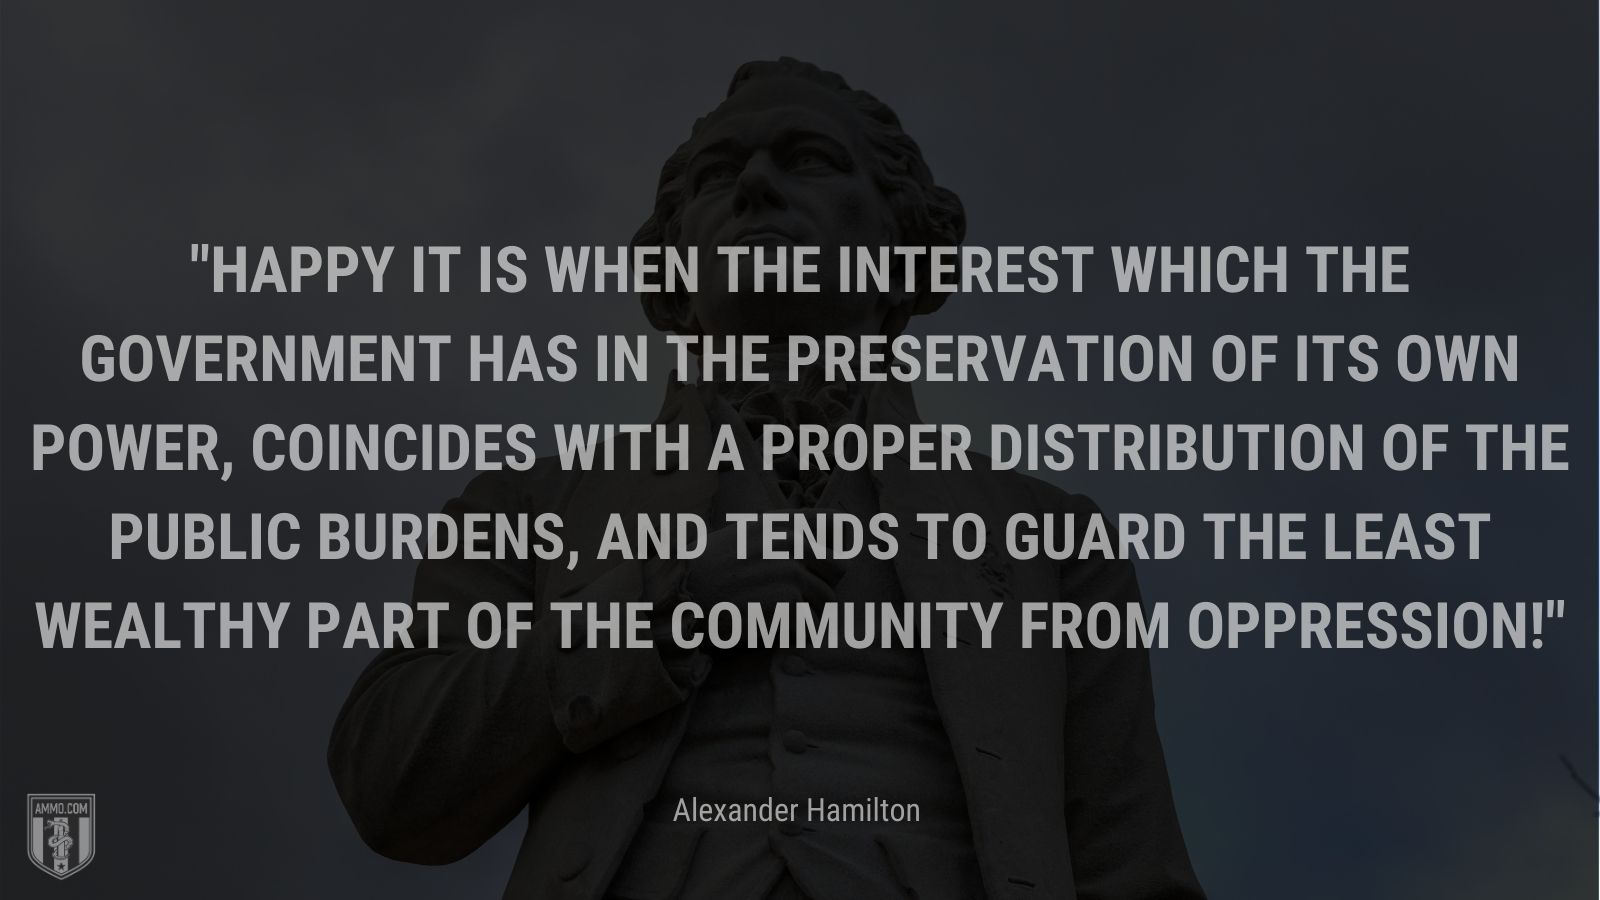 """""""Happy it is when the interest which the government has in the preservation of its own power, coincides with a proper distribution of the public burdens, and tends to guard the least wealthy part of the community from oppression!"""" - Alexander Hamilton"""